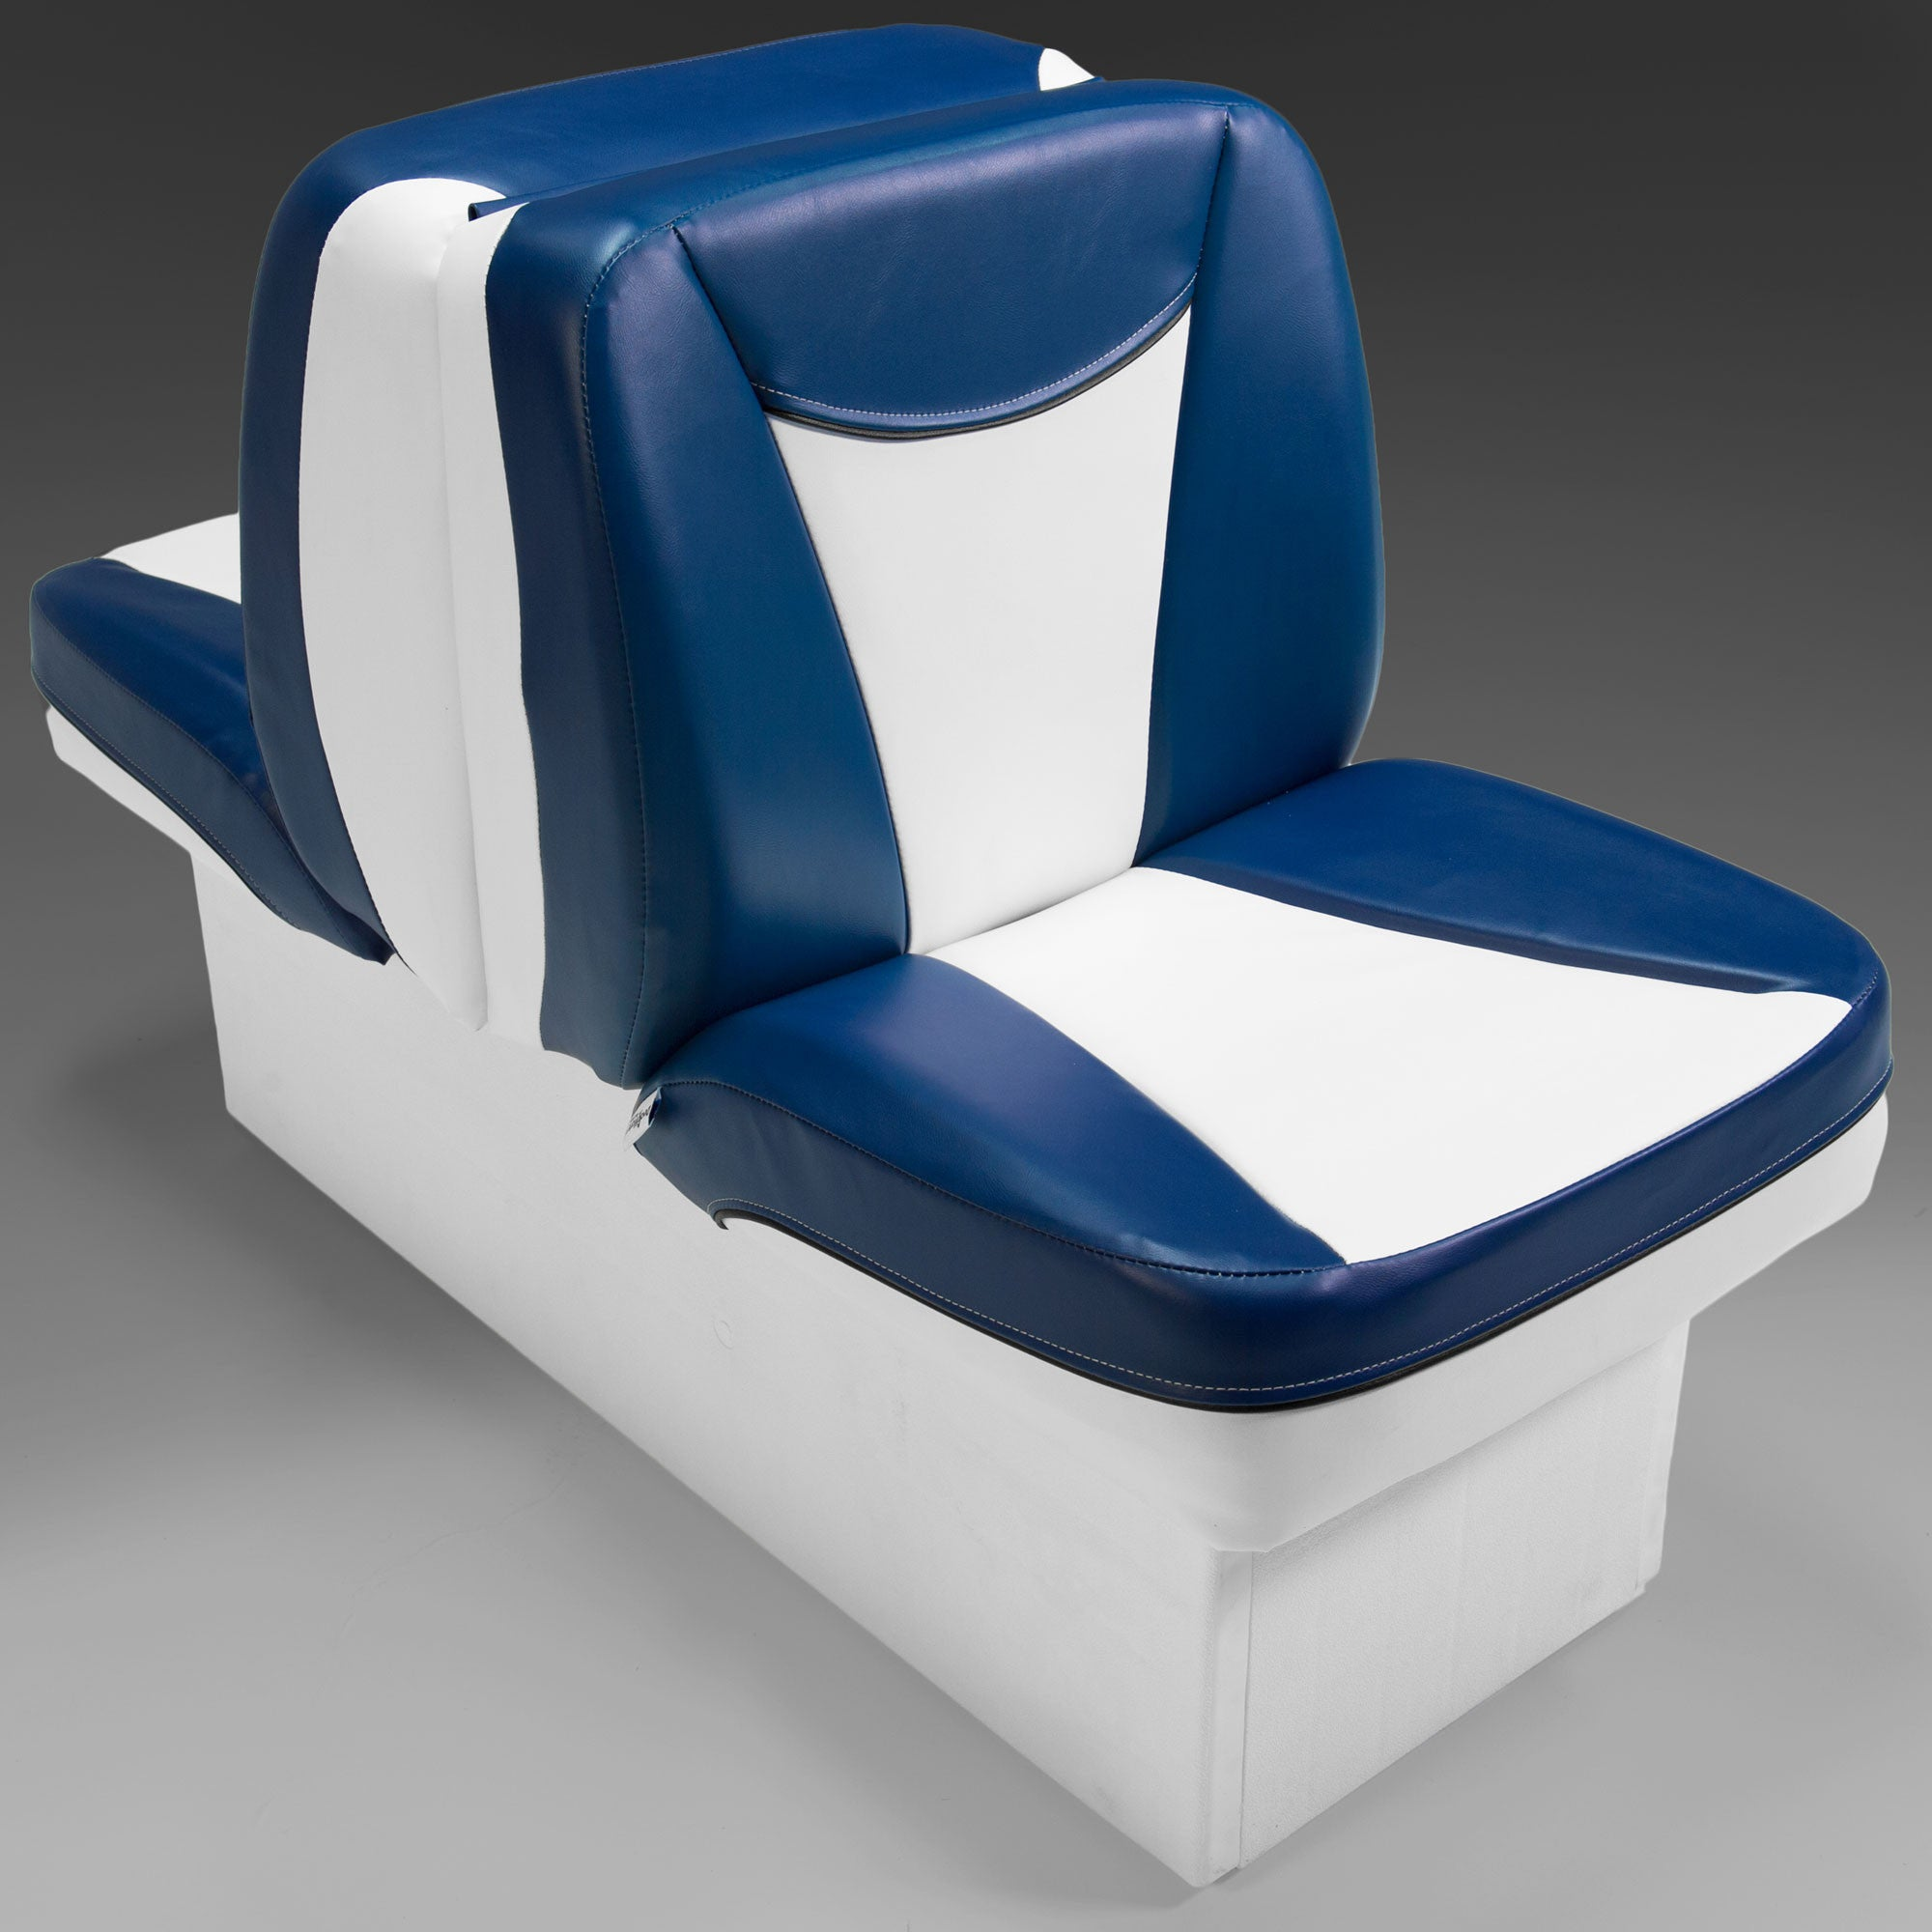 Back to back boat seats for sale in canada calgary